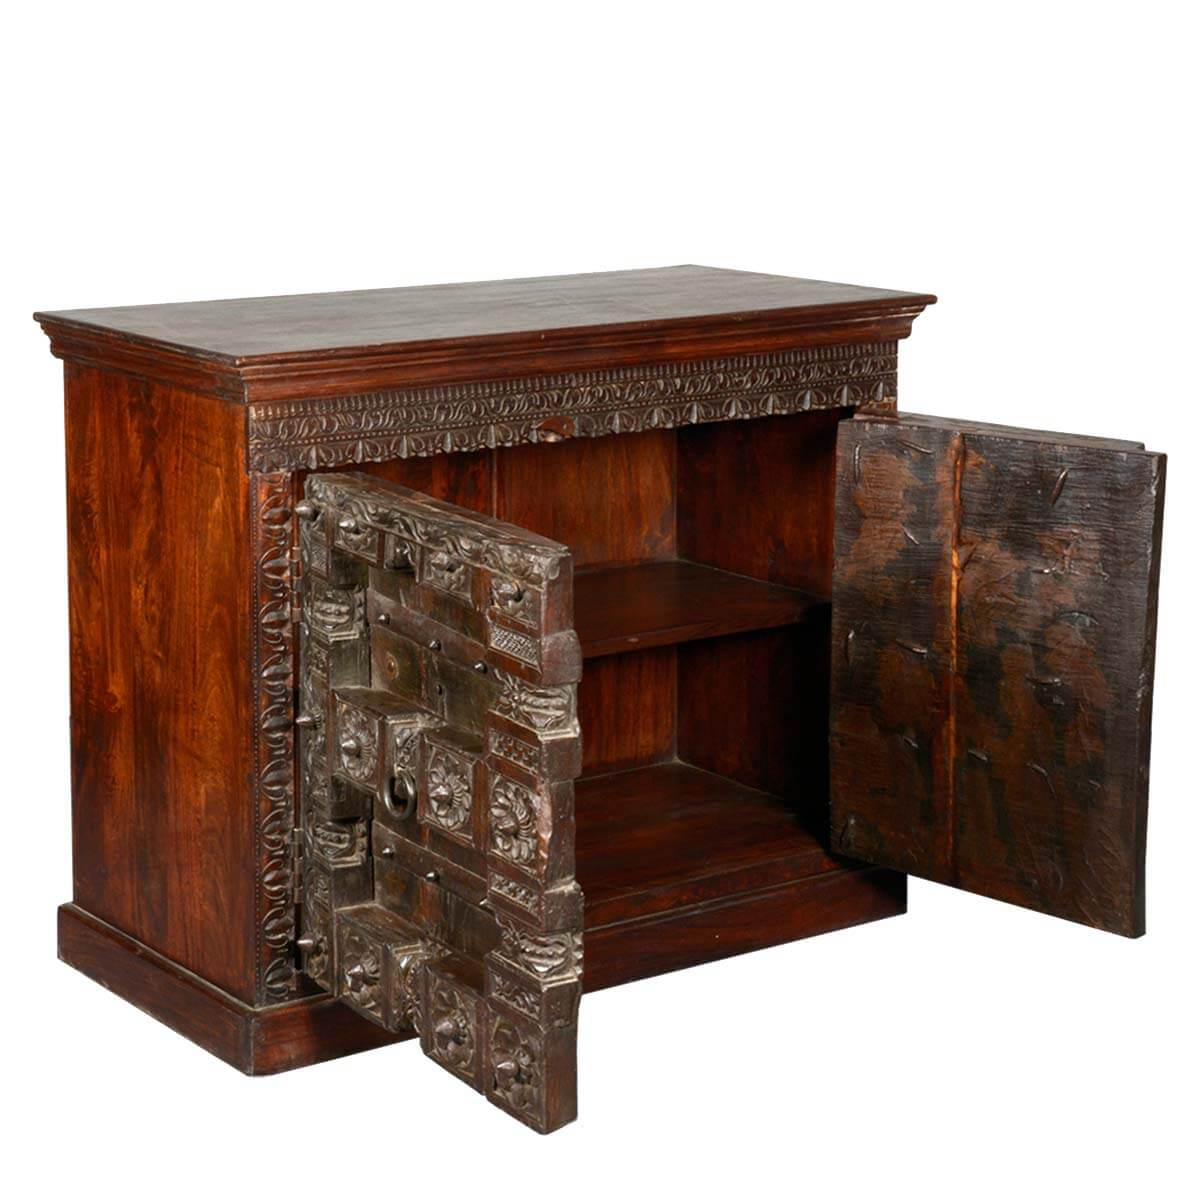 Gothic Hand Carved Reclaimed Hardwood Sideboard Cabinet Buffet : 46882 from www.sierralivingconcepts.com size 1200 x 1200 jpeg 138kB